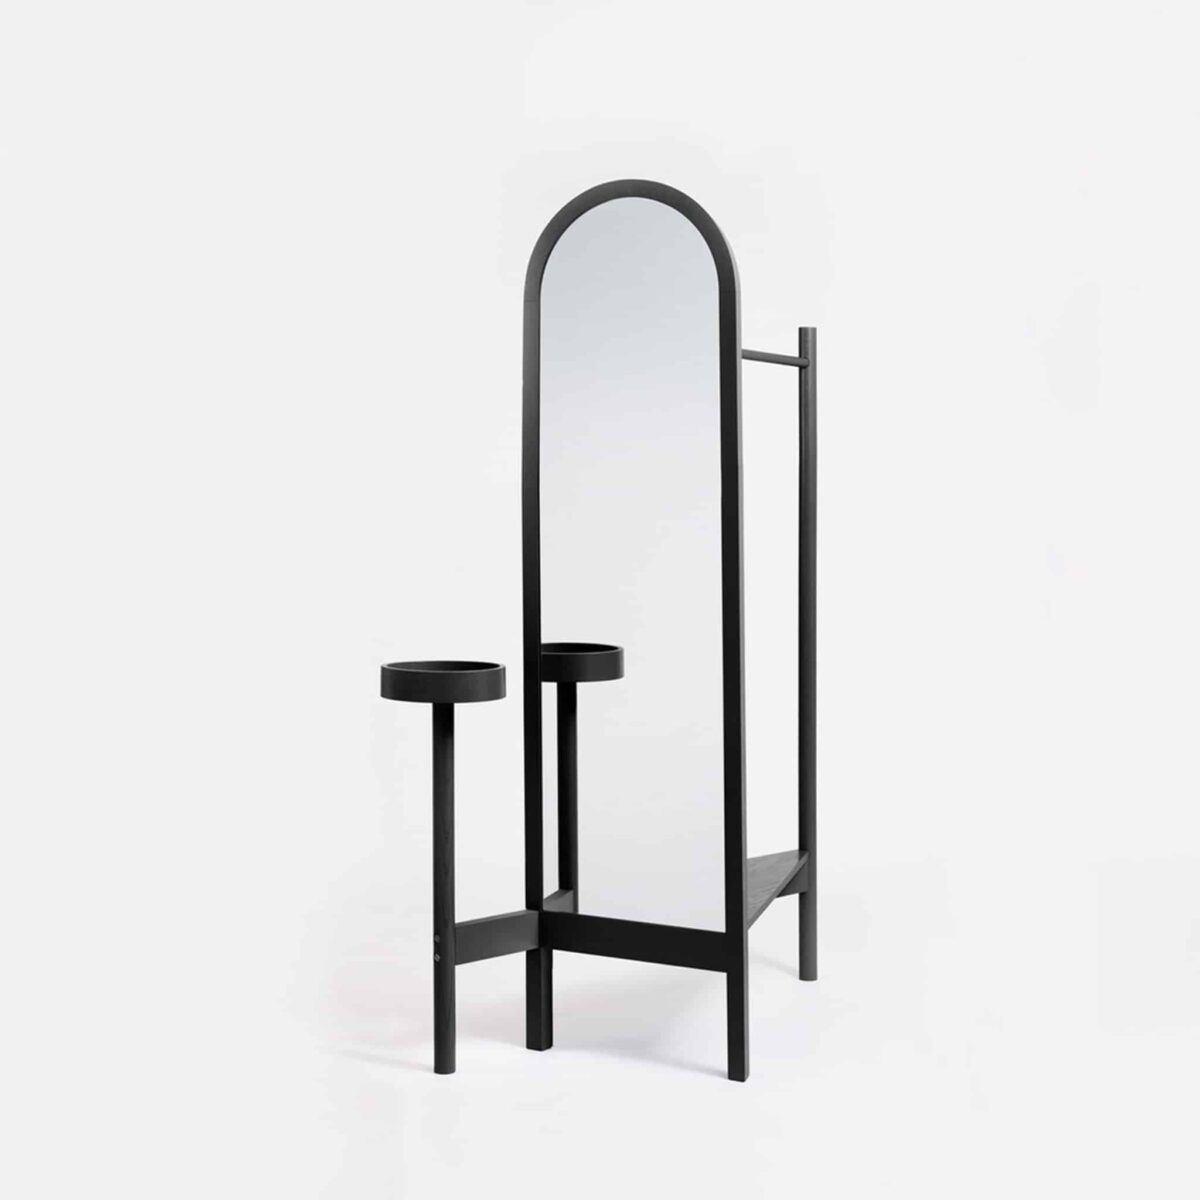 aeries-two-valet-stand-black-another-country-001